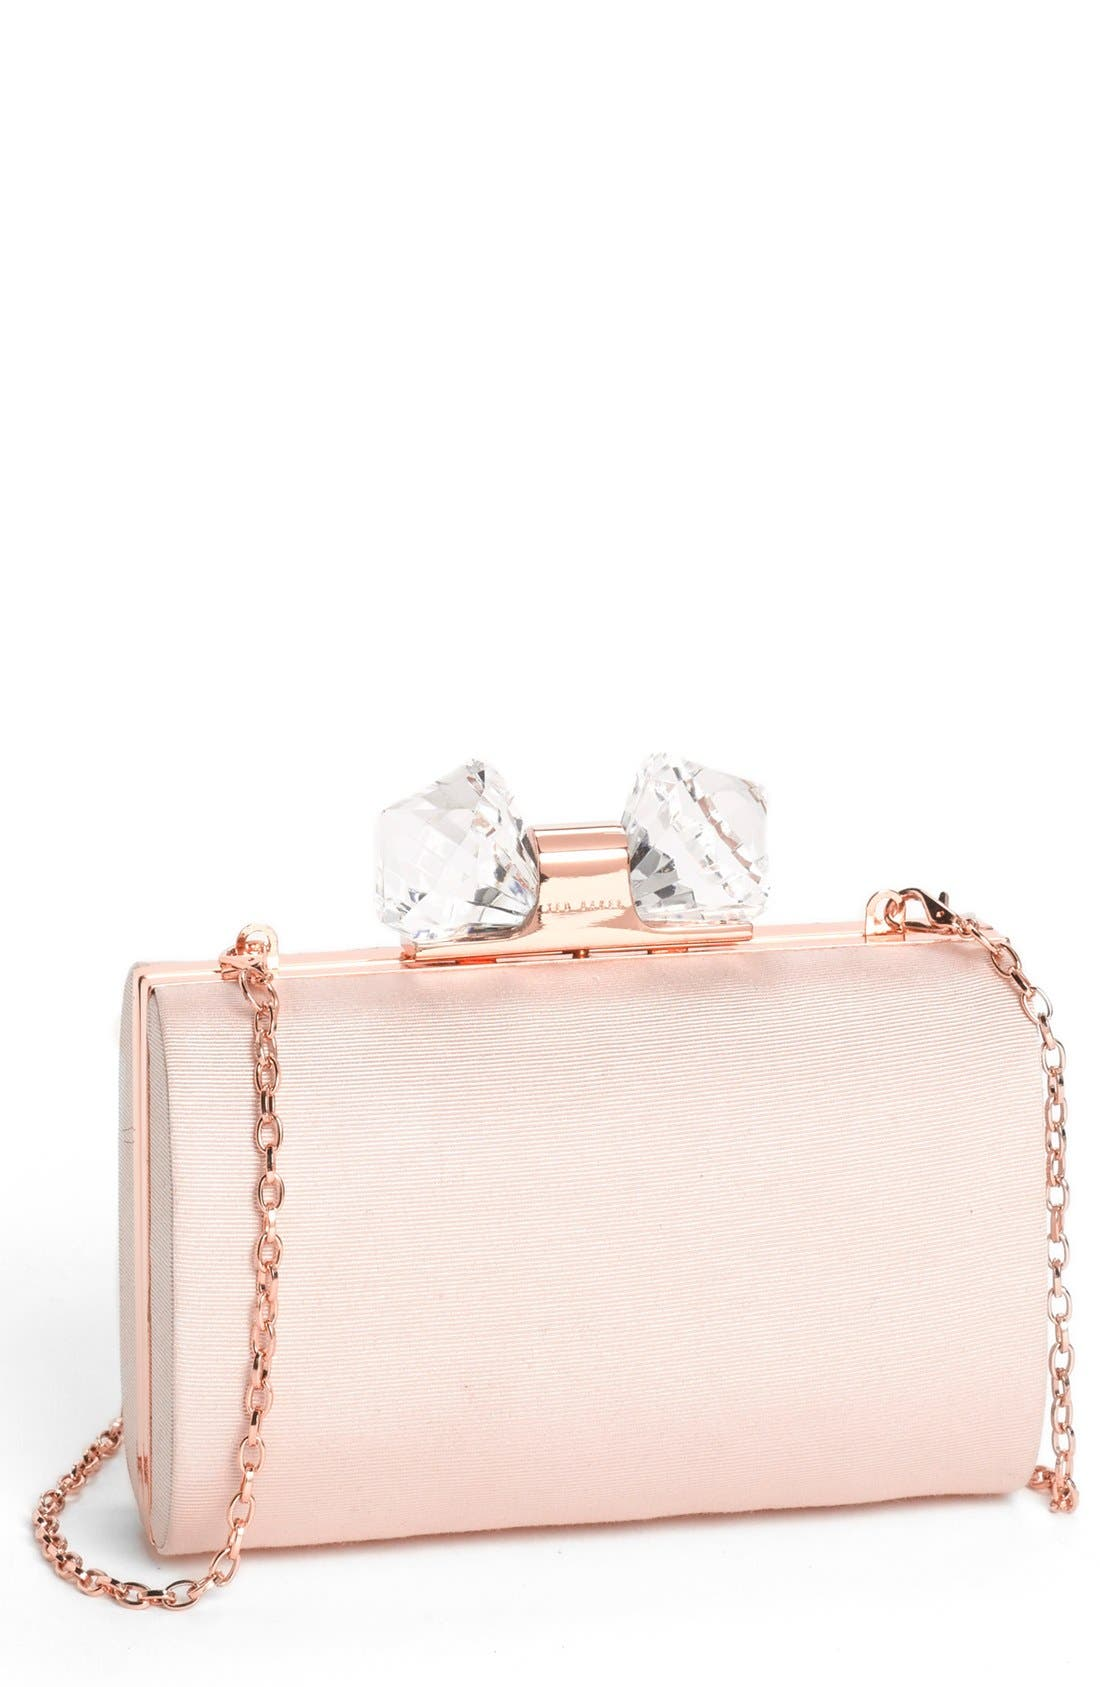 Main Image - Ted Baker London 'Holiday - Crystal' Frame Clutch